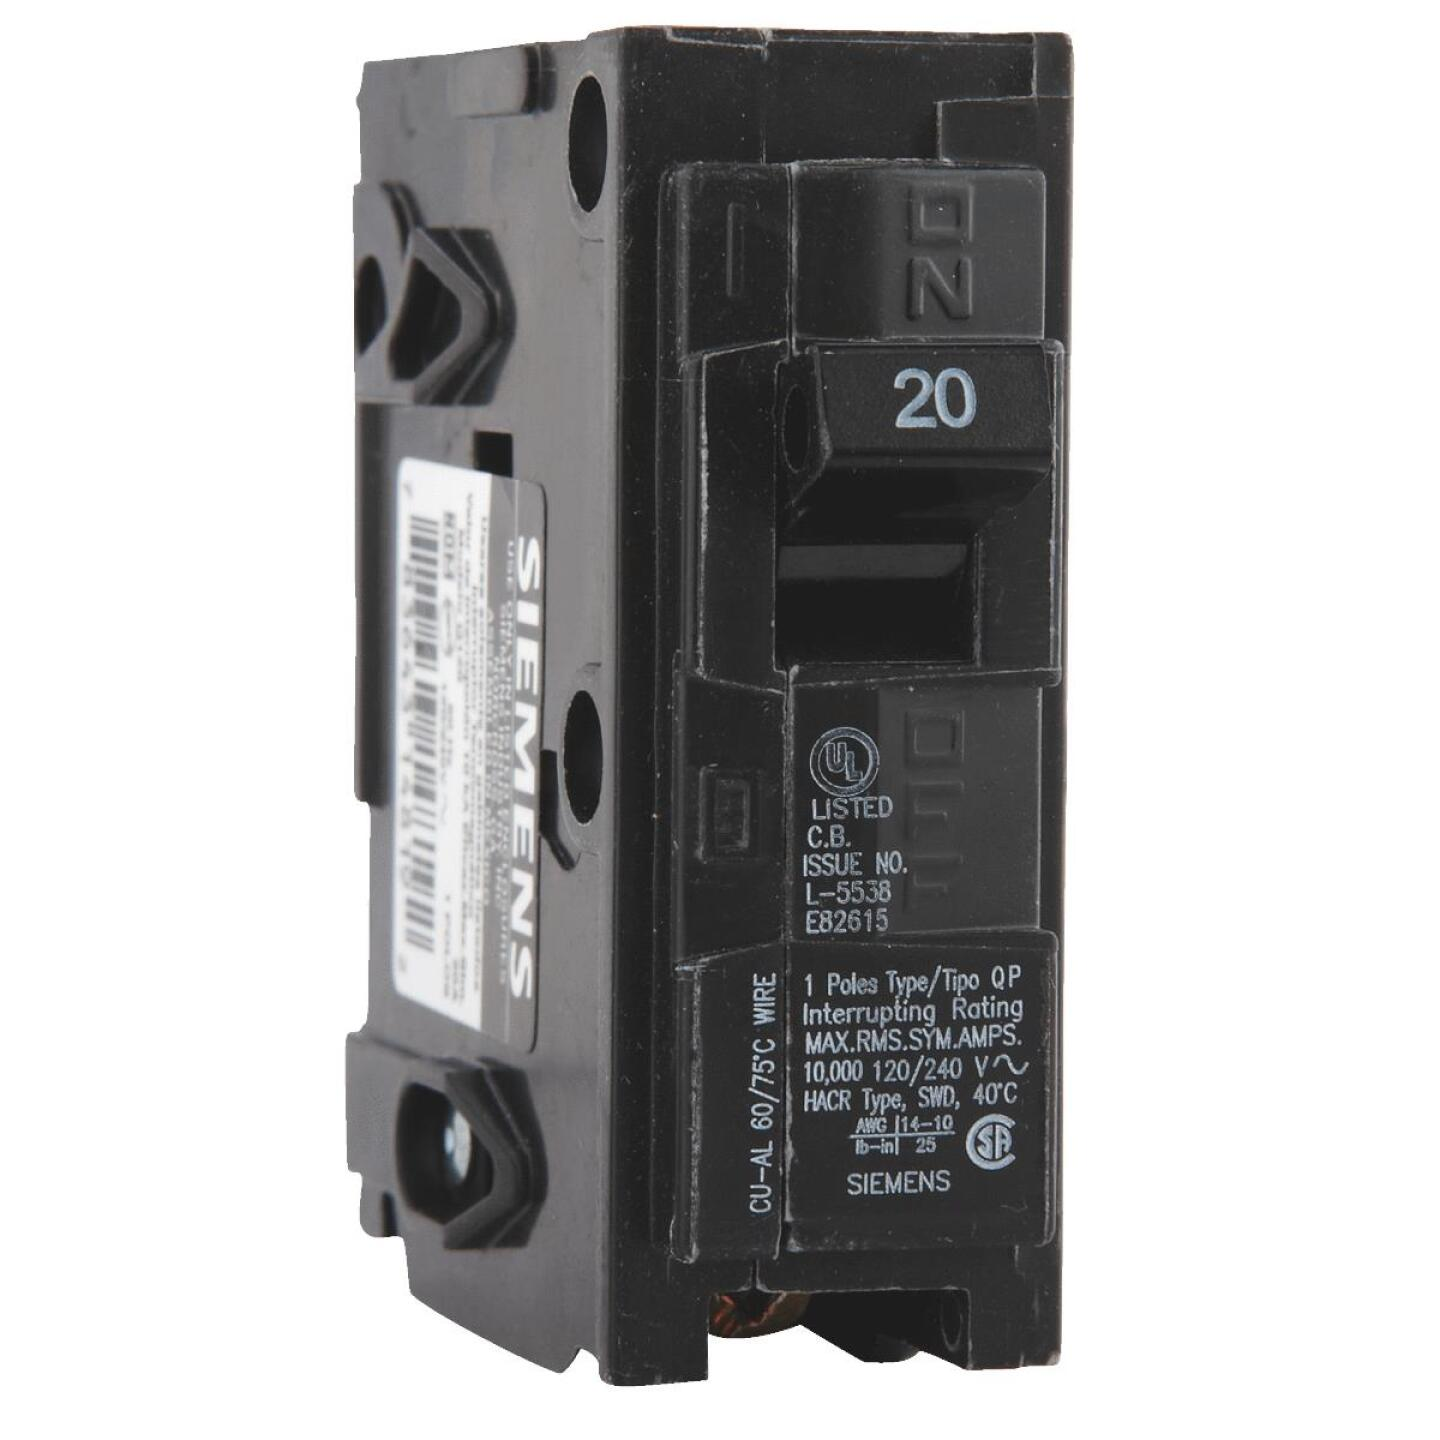 Connecticut Electric 20A Single-Pole Standard Trip Interchangeable Packaged Circuit Breaker Image 2